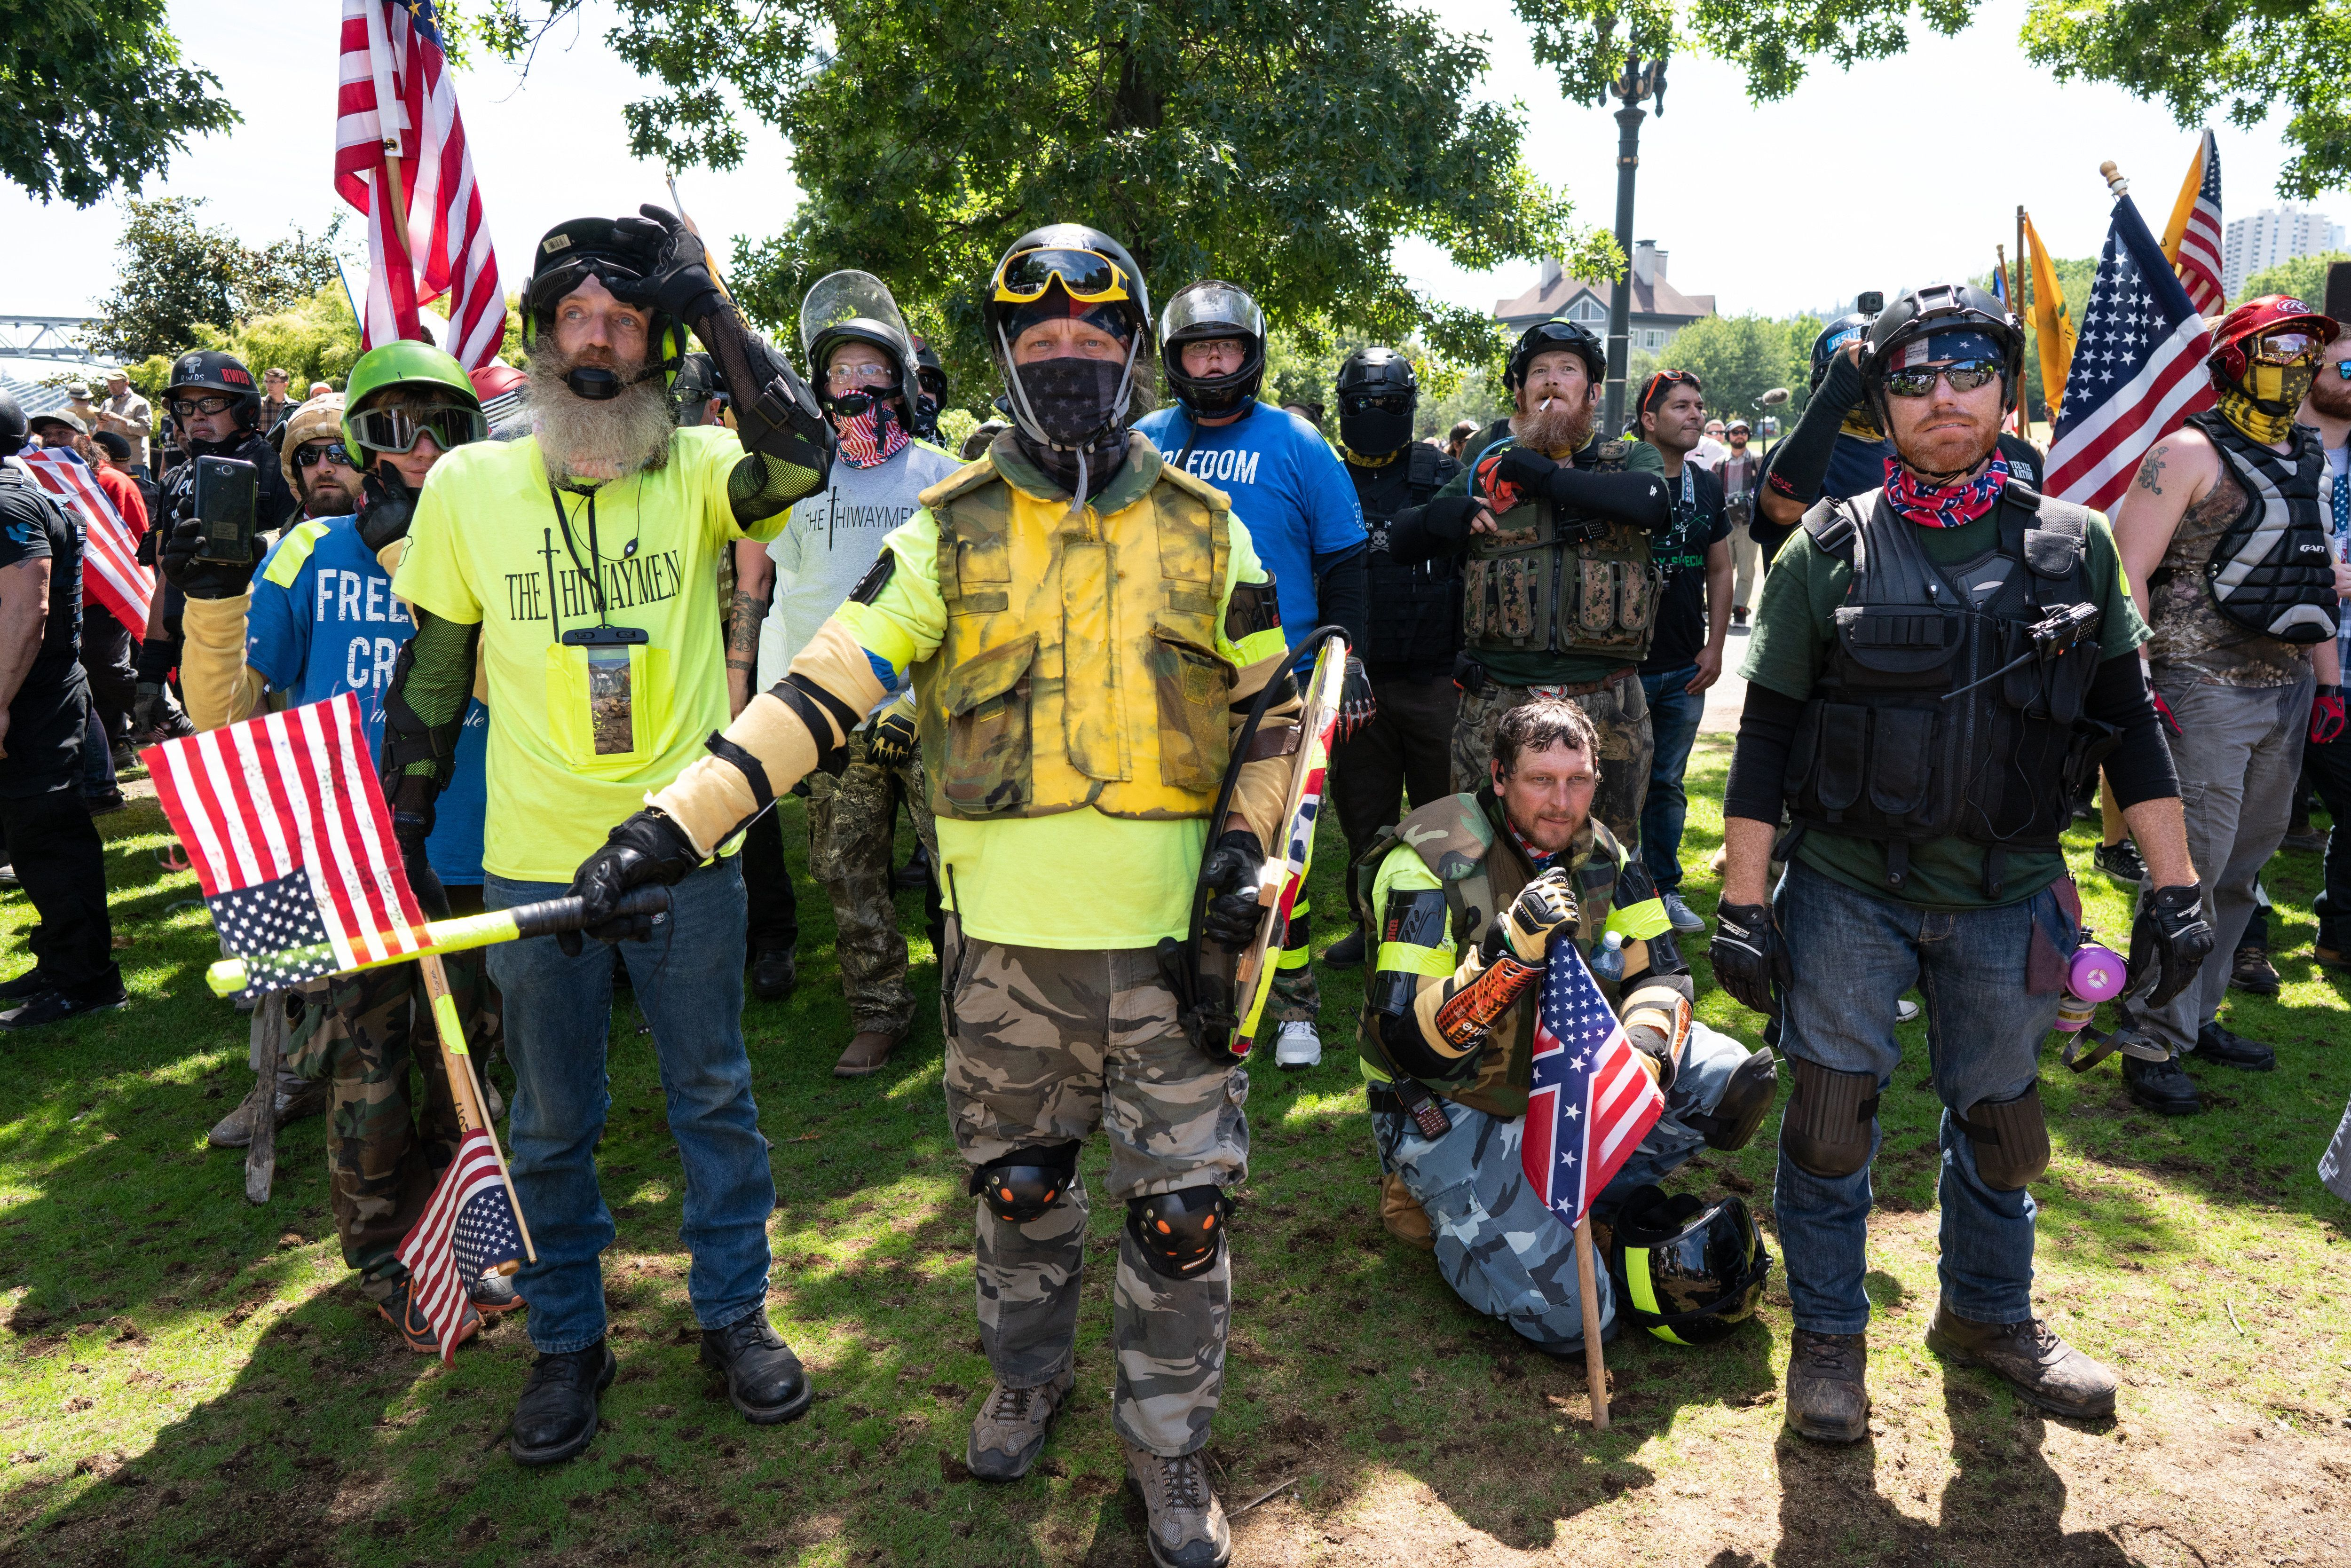 For Each Fascist At Portland Rally, Protesters Give Money To Pro-Immigrant Group